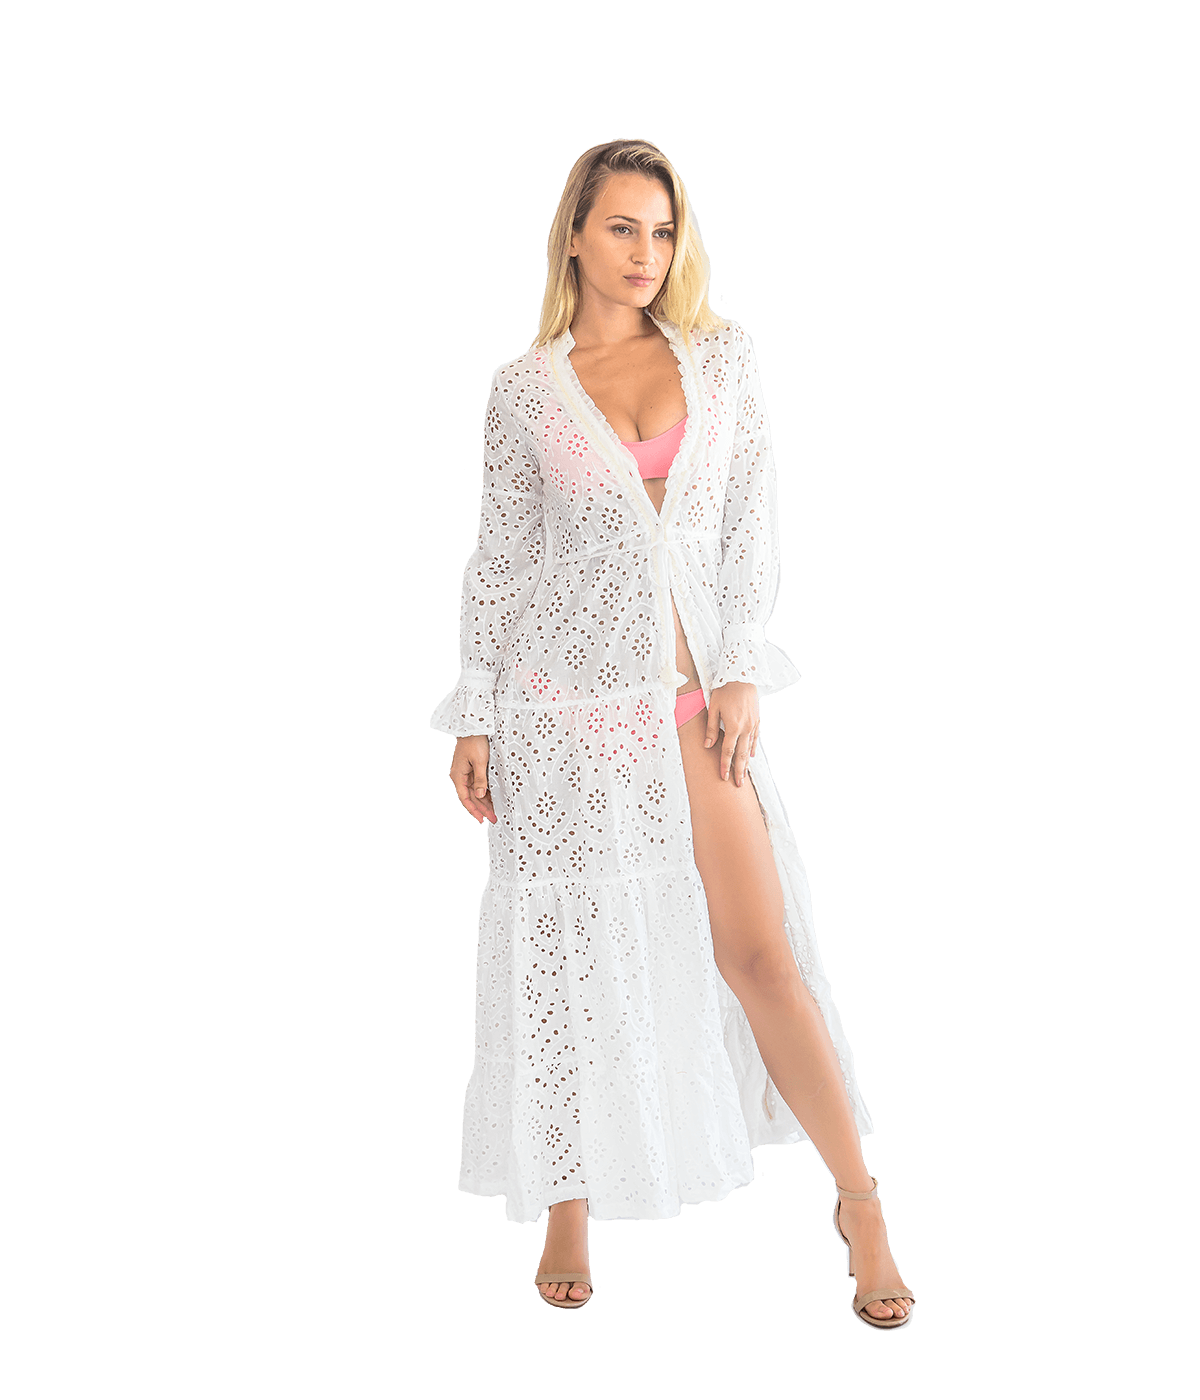 Rita Eyelet Ruffle Beach Dress - White - Lady Jetset